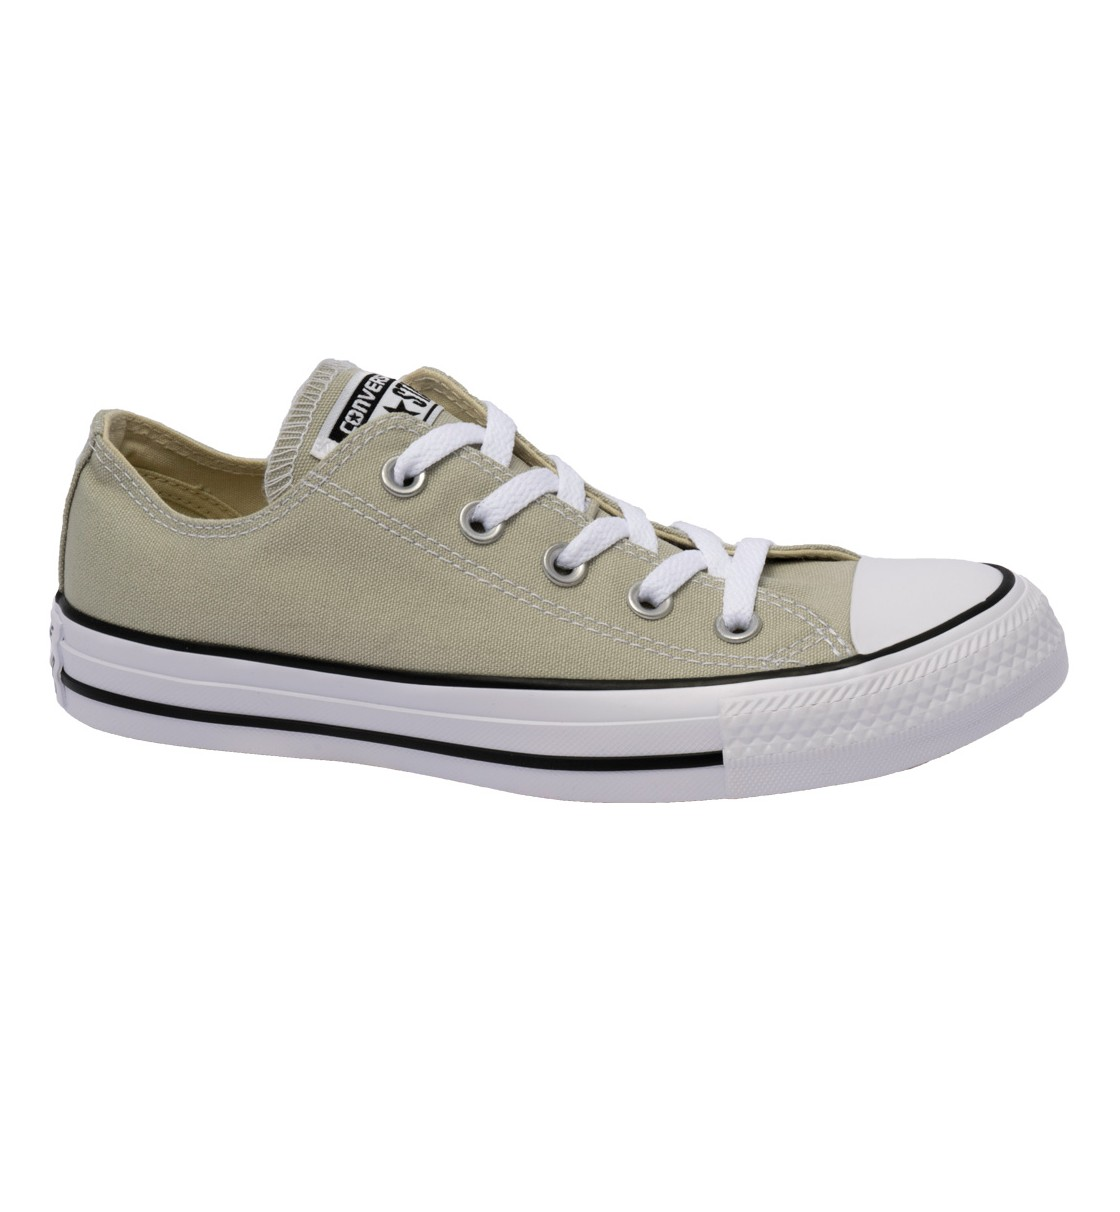 Converse Unisex Παπούτσι Μόδας Chuck Taylor All Star Ox 155571C